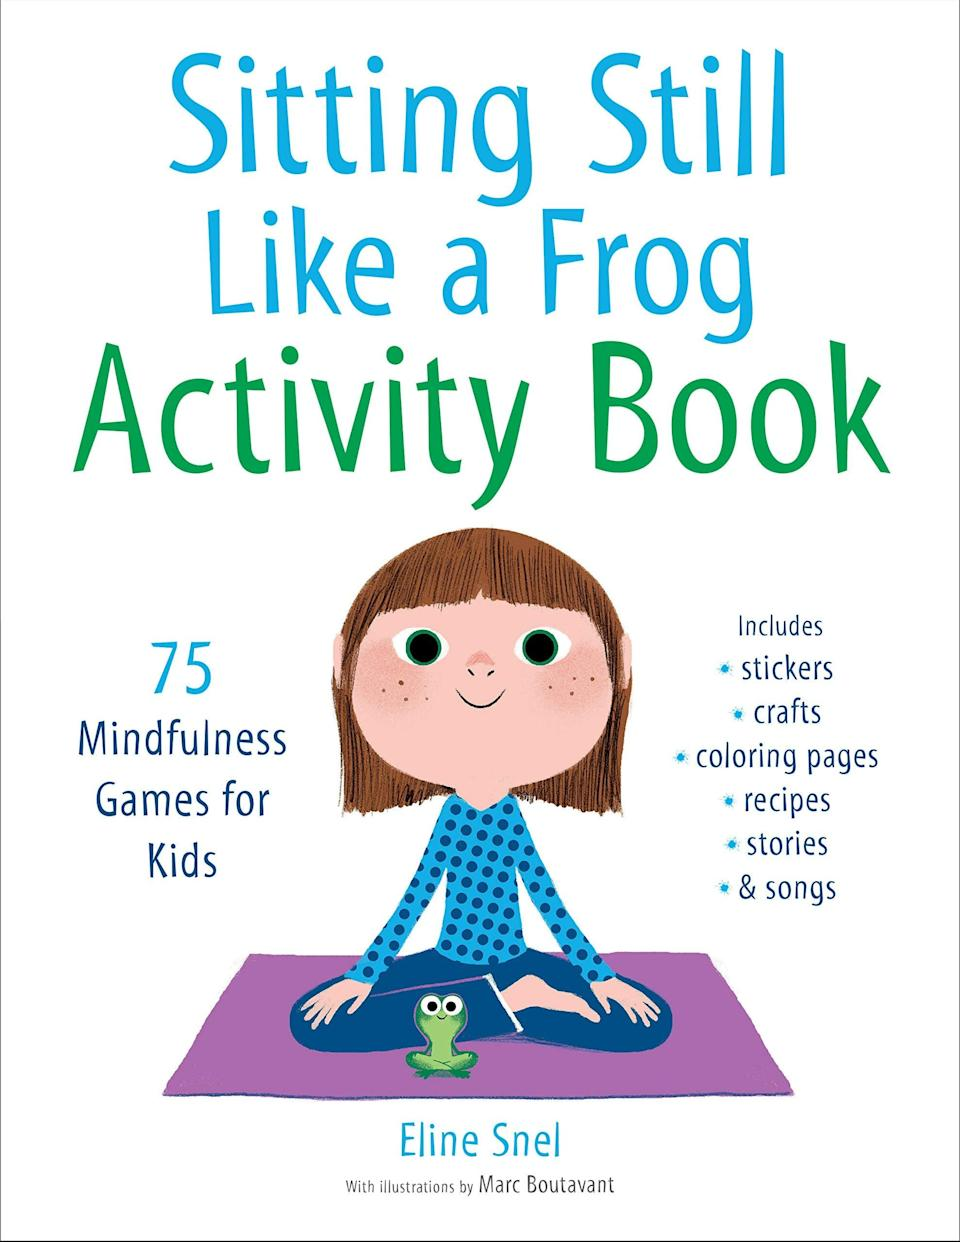 <p>Chock-full of mindfulness games and activities, <strong><span>Sitting Still Like a Frog Activity Book</span></strong> ($11) has stickers, crafts, and coloring pages designed to make little ones feel zen.</p>